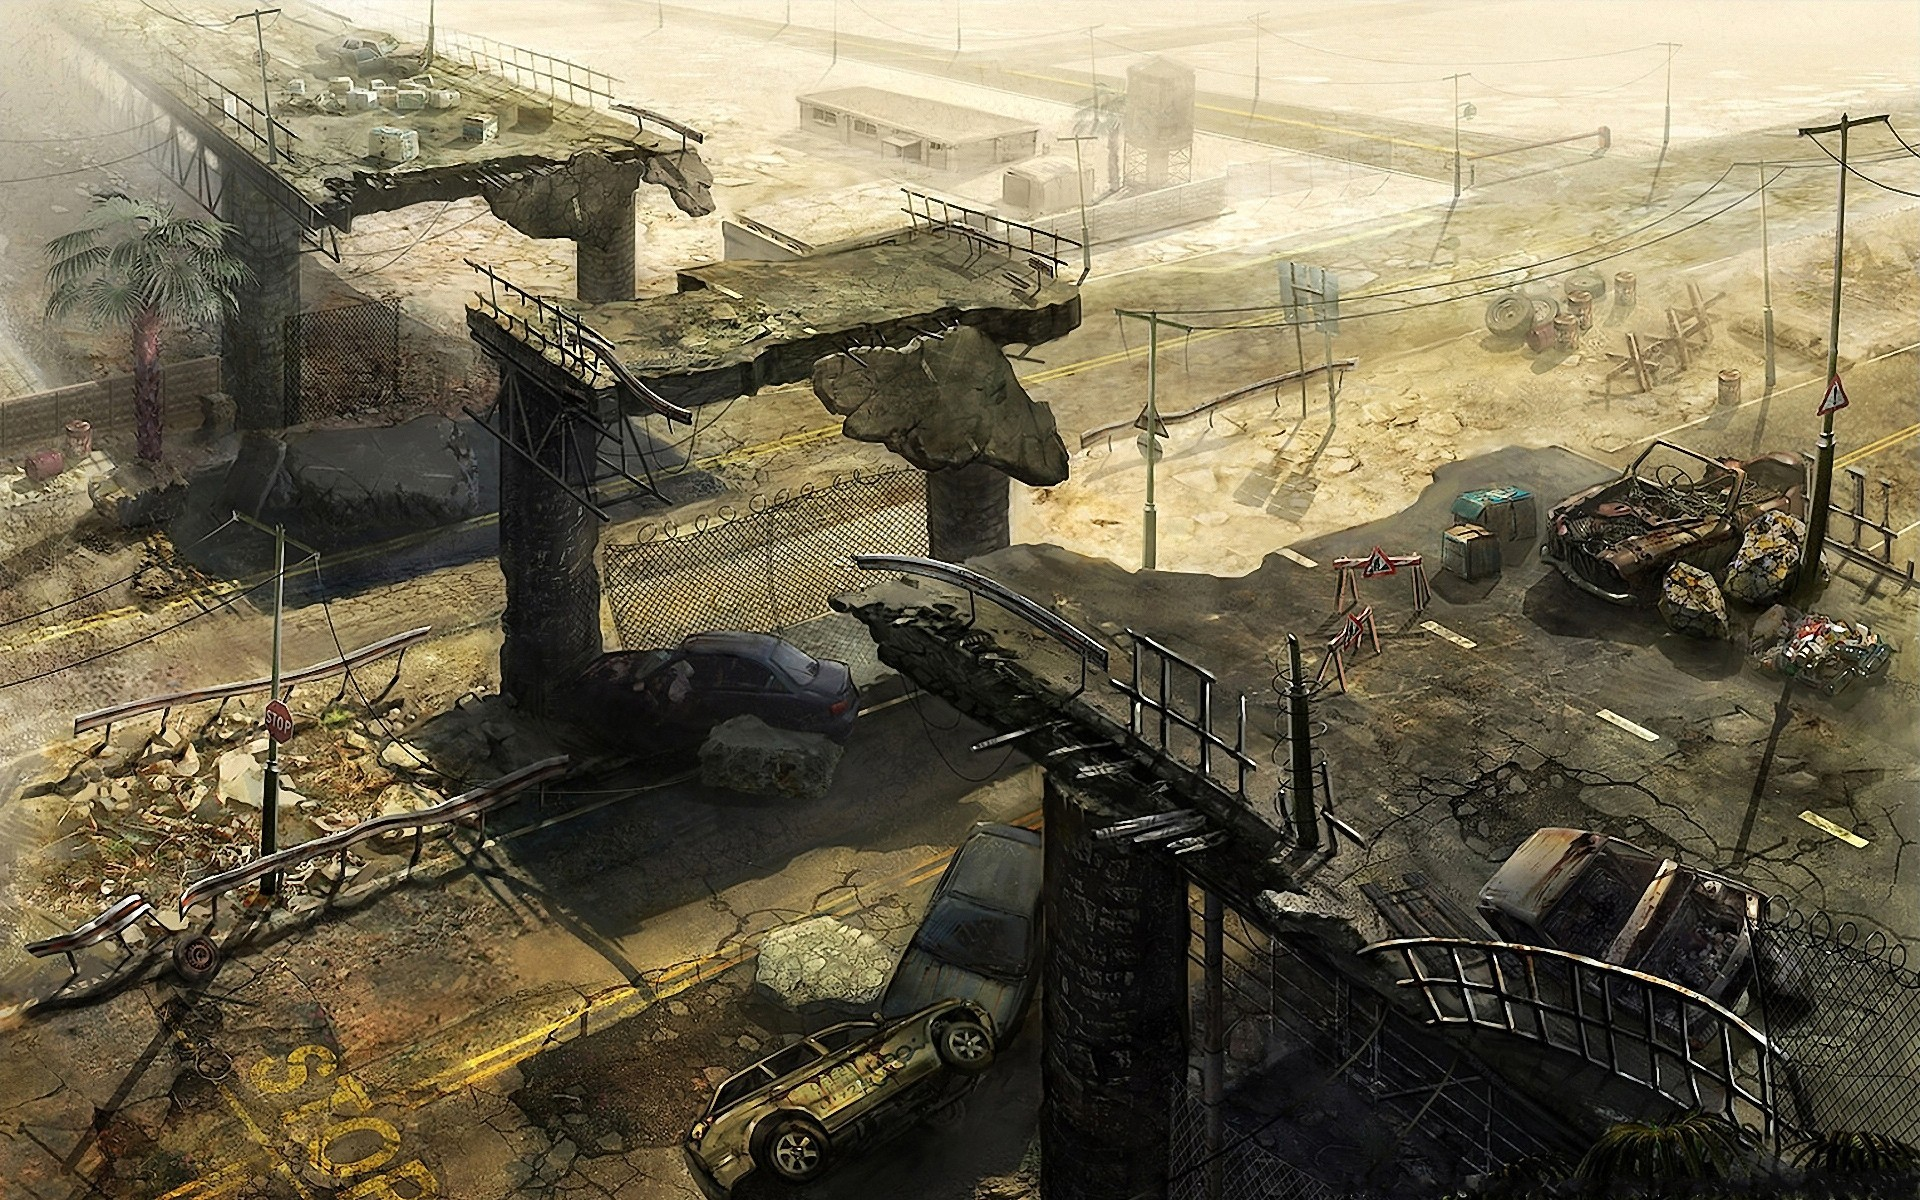 post-apocalyptic-city-ruins-fantasy-hd-wallpaper-1920x1200-7524